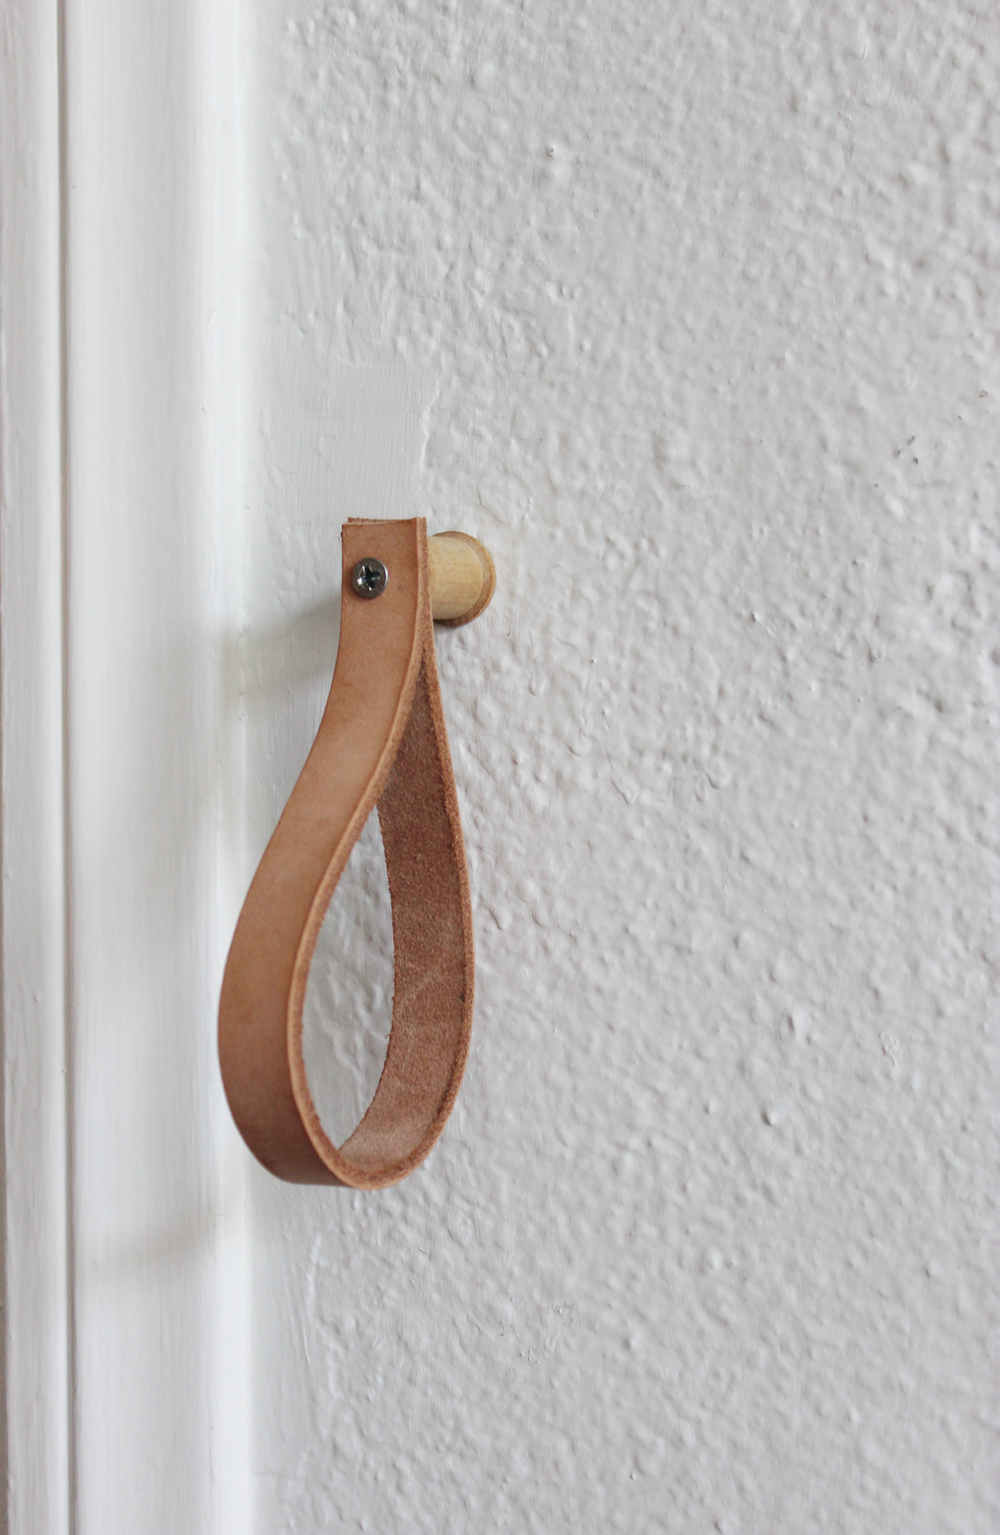 DIY Leather Hanging Strap hometohem.com 2016_10